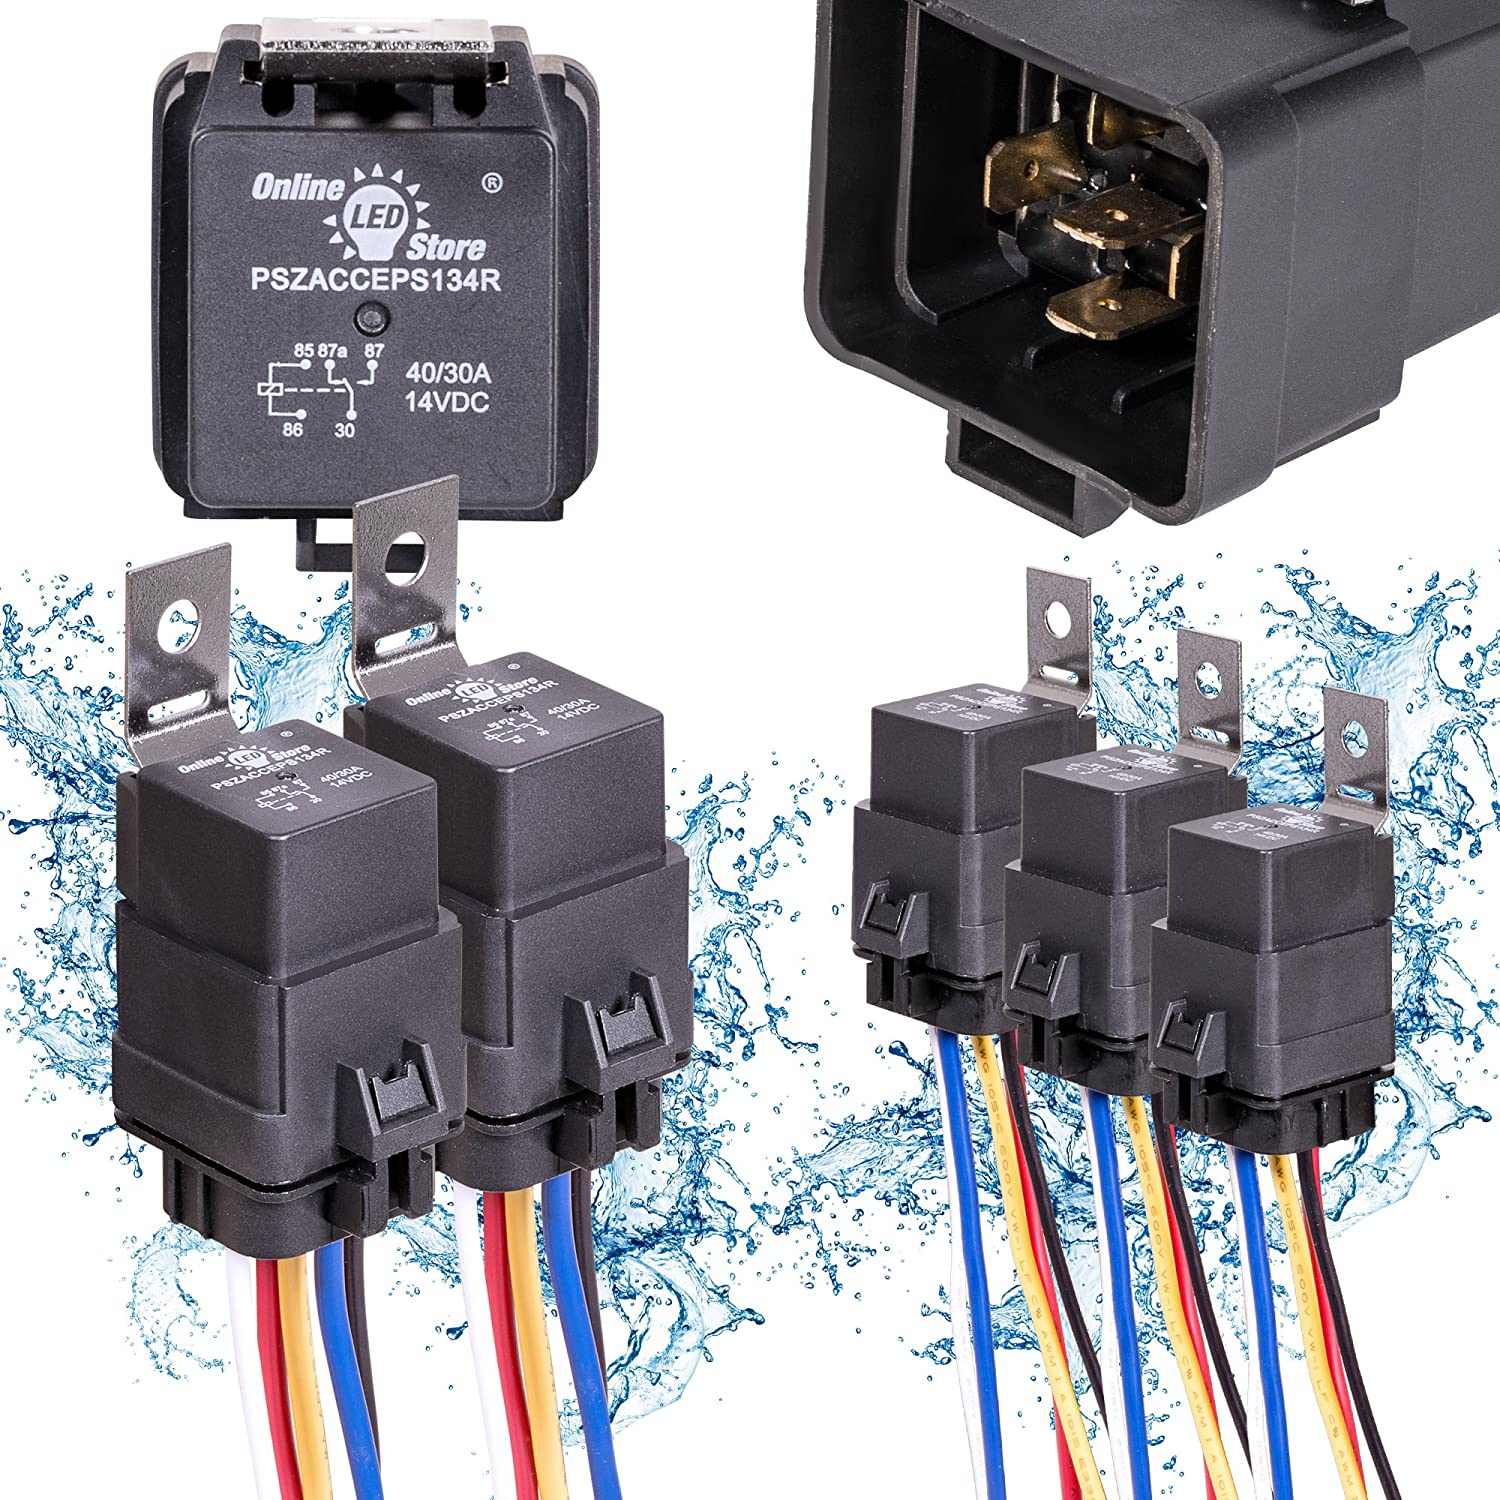 Amazon.com: ONLINE LED STORE 5 Pack 40/30 Amp Waterproof Relay ...